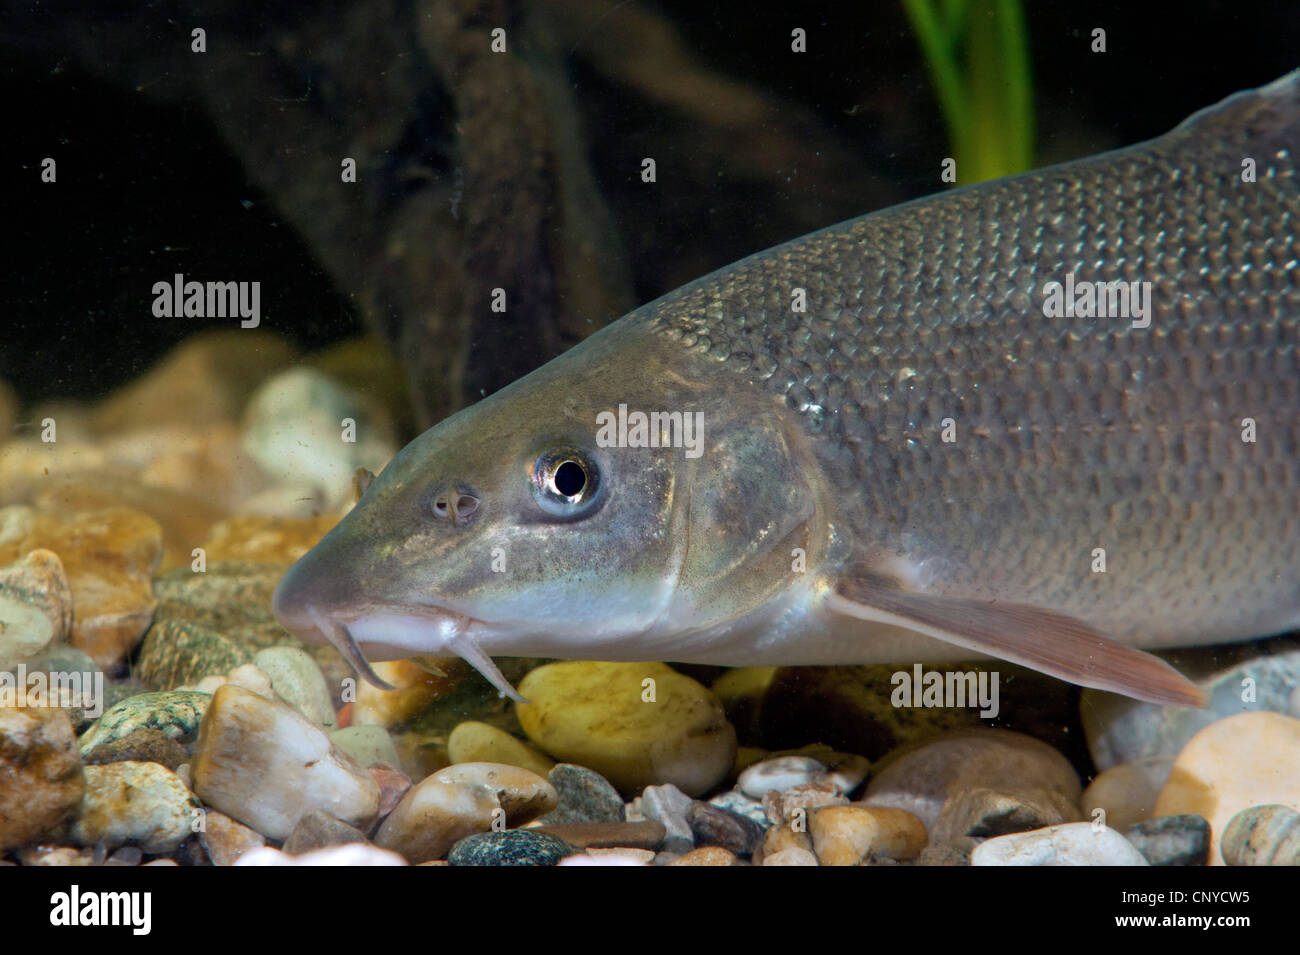 barbel (Barbus barbus), portrait at the pebble ground of a water - Stock Image